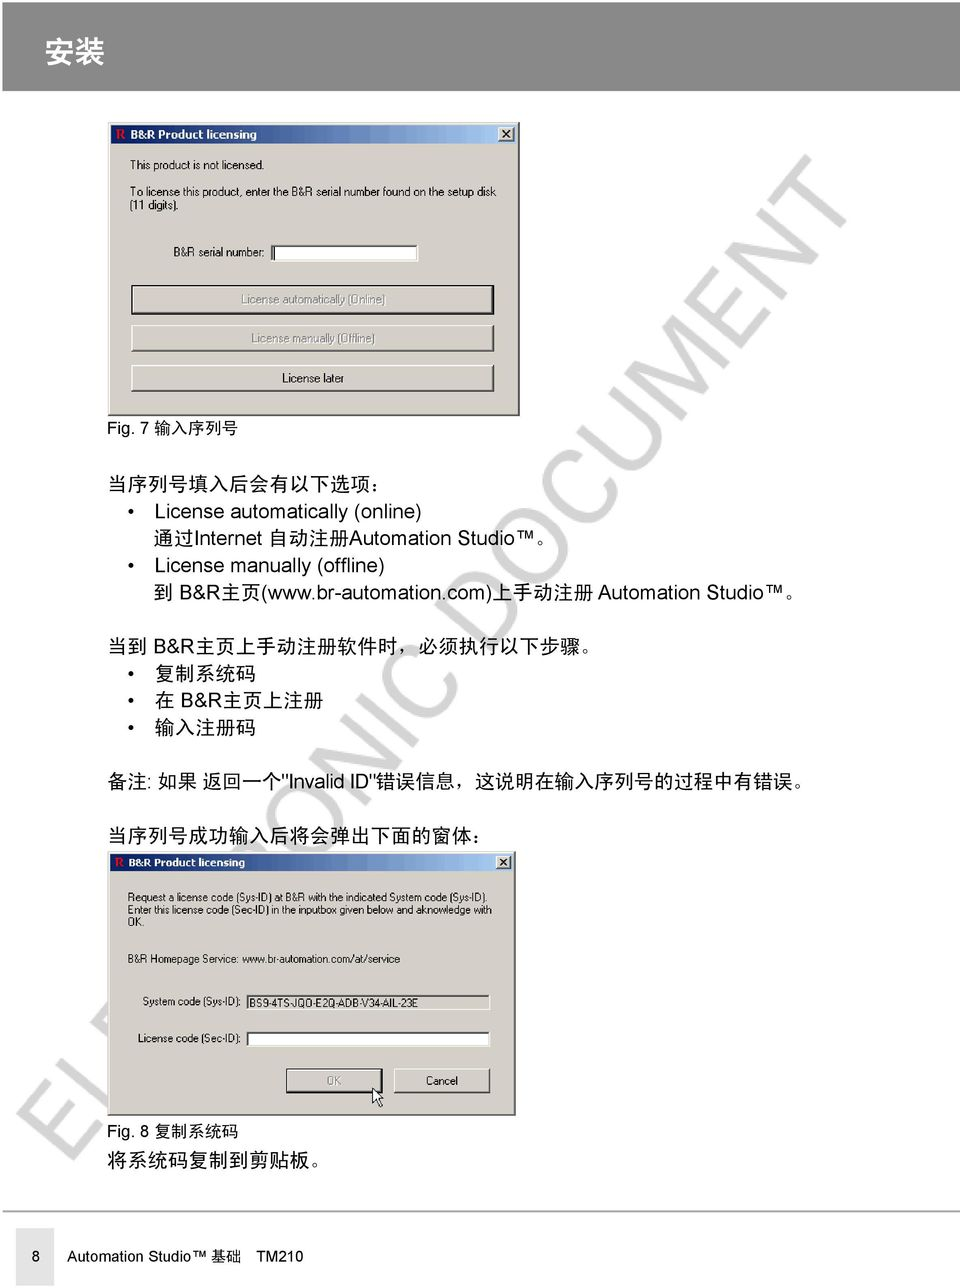 License manually (offline) 到 B&R 主 页 (www.br-automation.